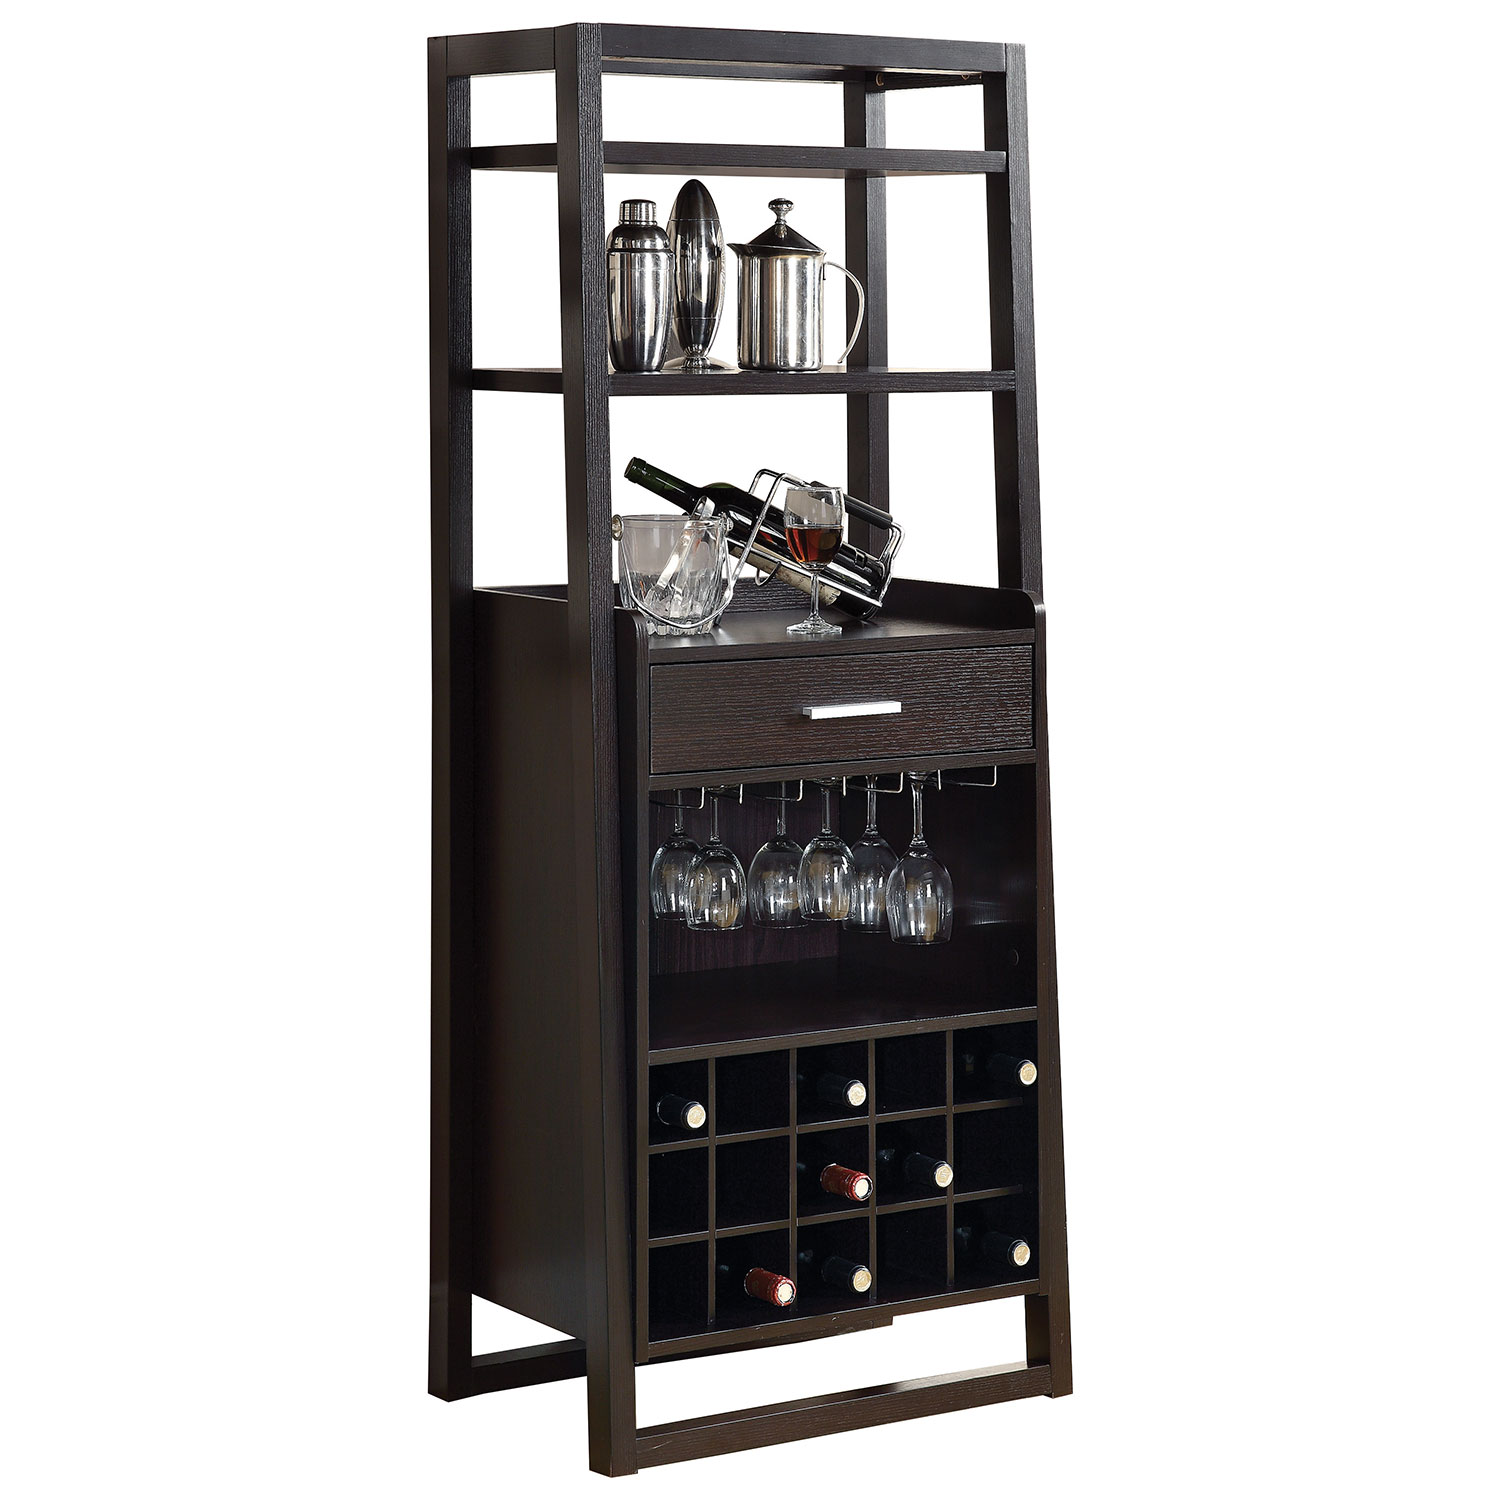 cabinetside wine rack products cupboard furniture abbonto board cabinet barn